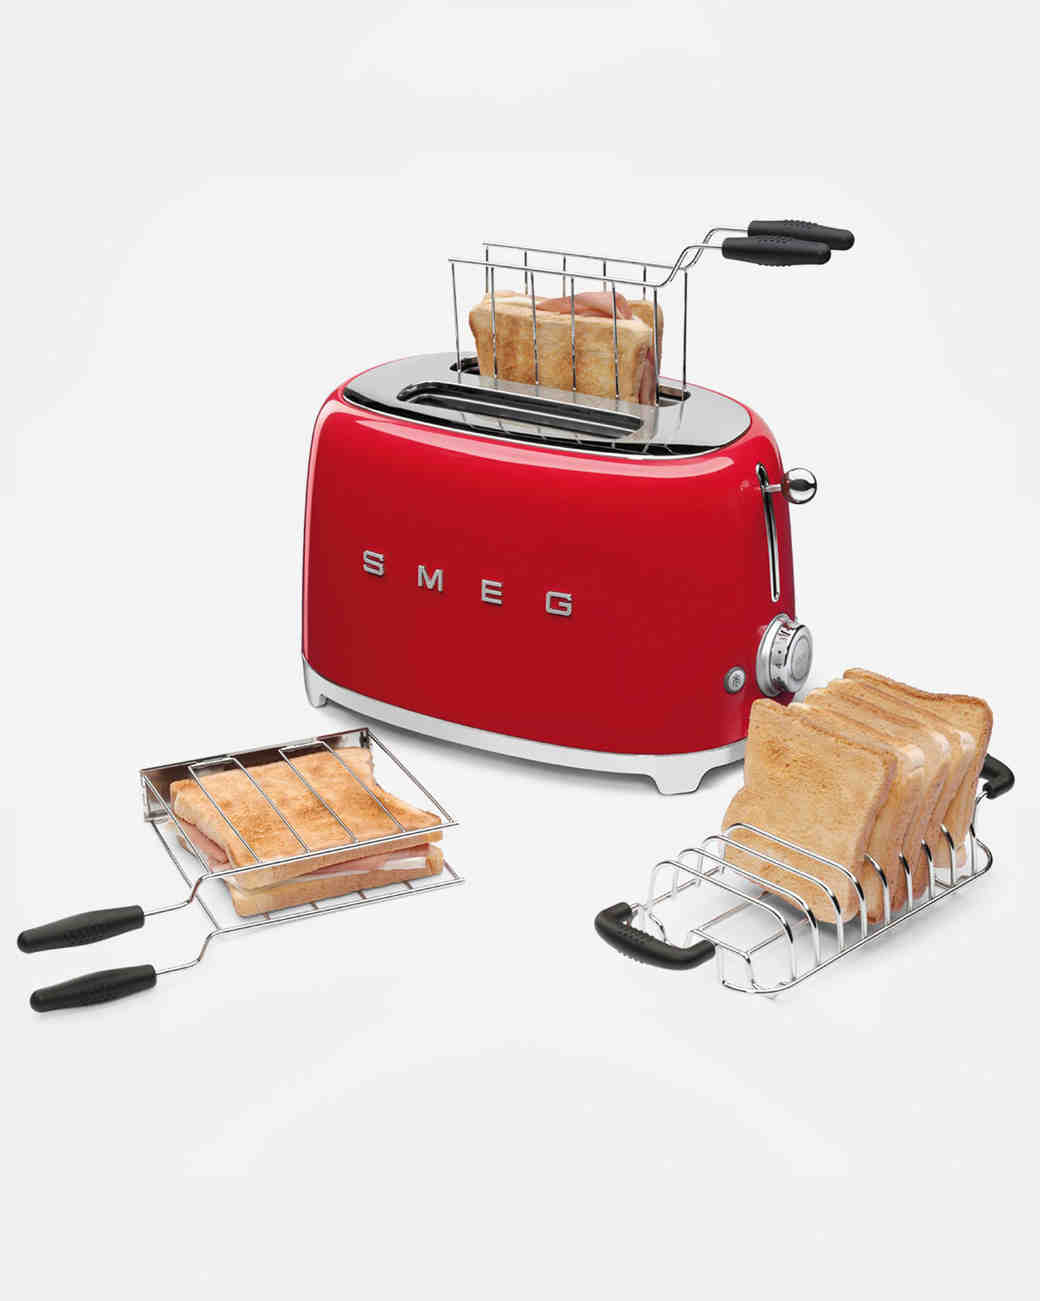 smeg red toaster two slice with basket